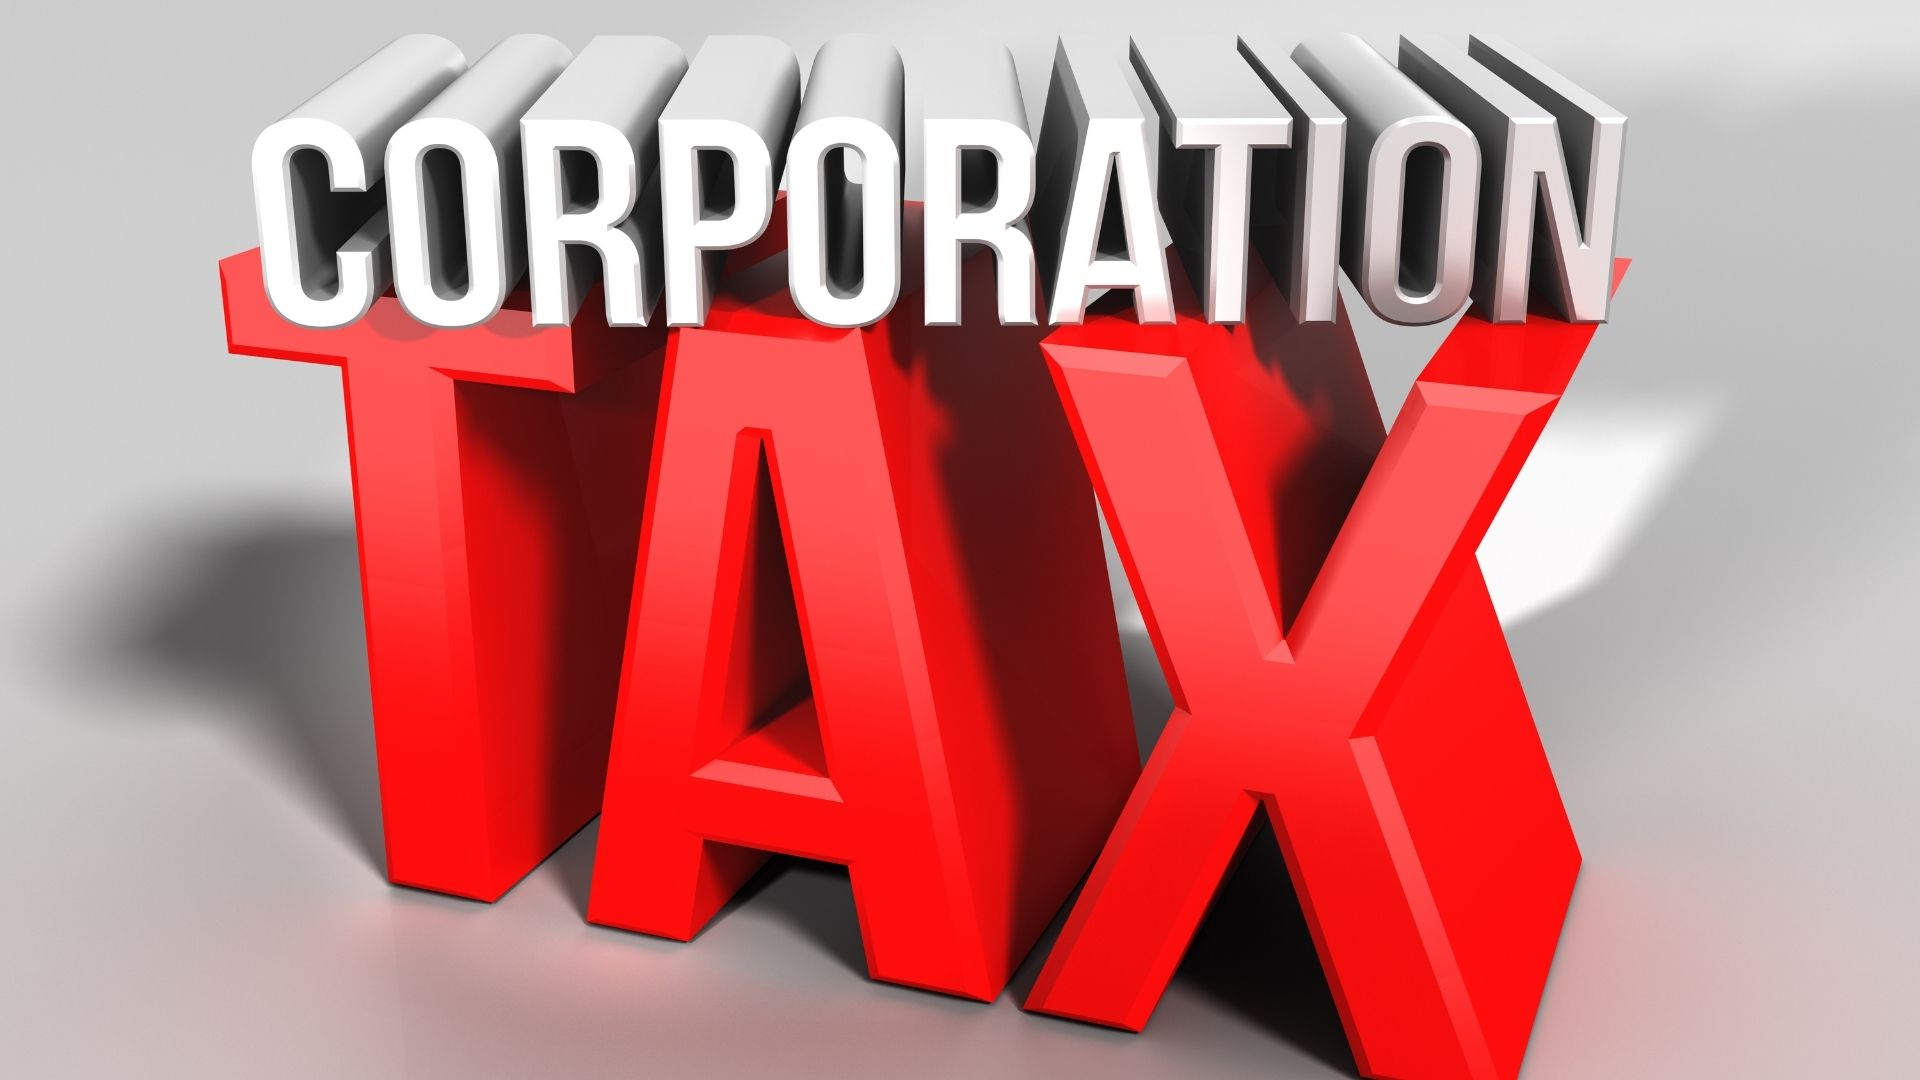 What will MTD for Corporation Tax look like? 33